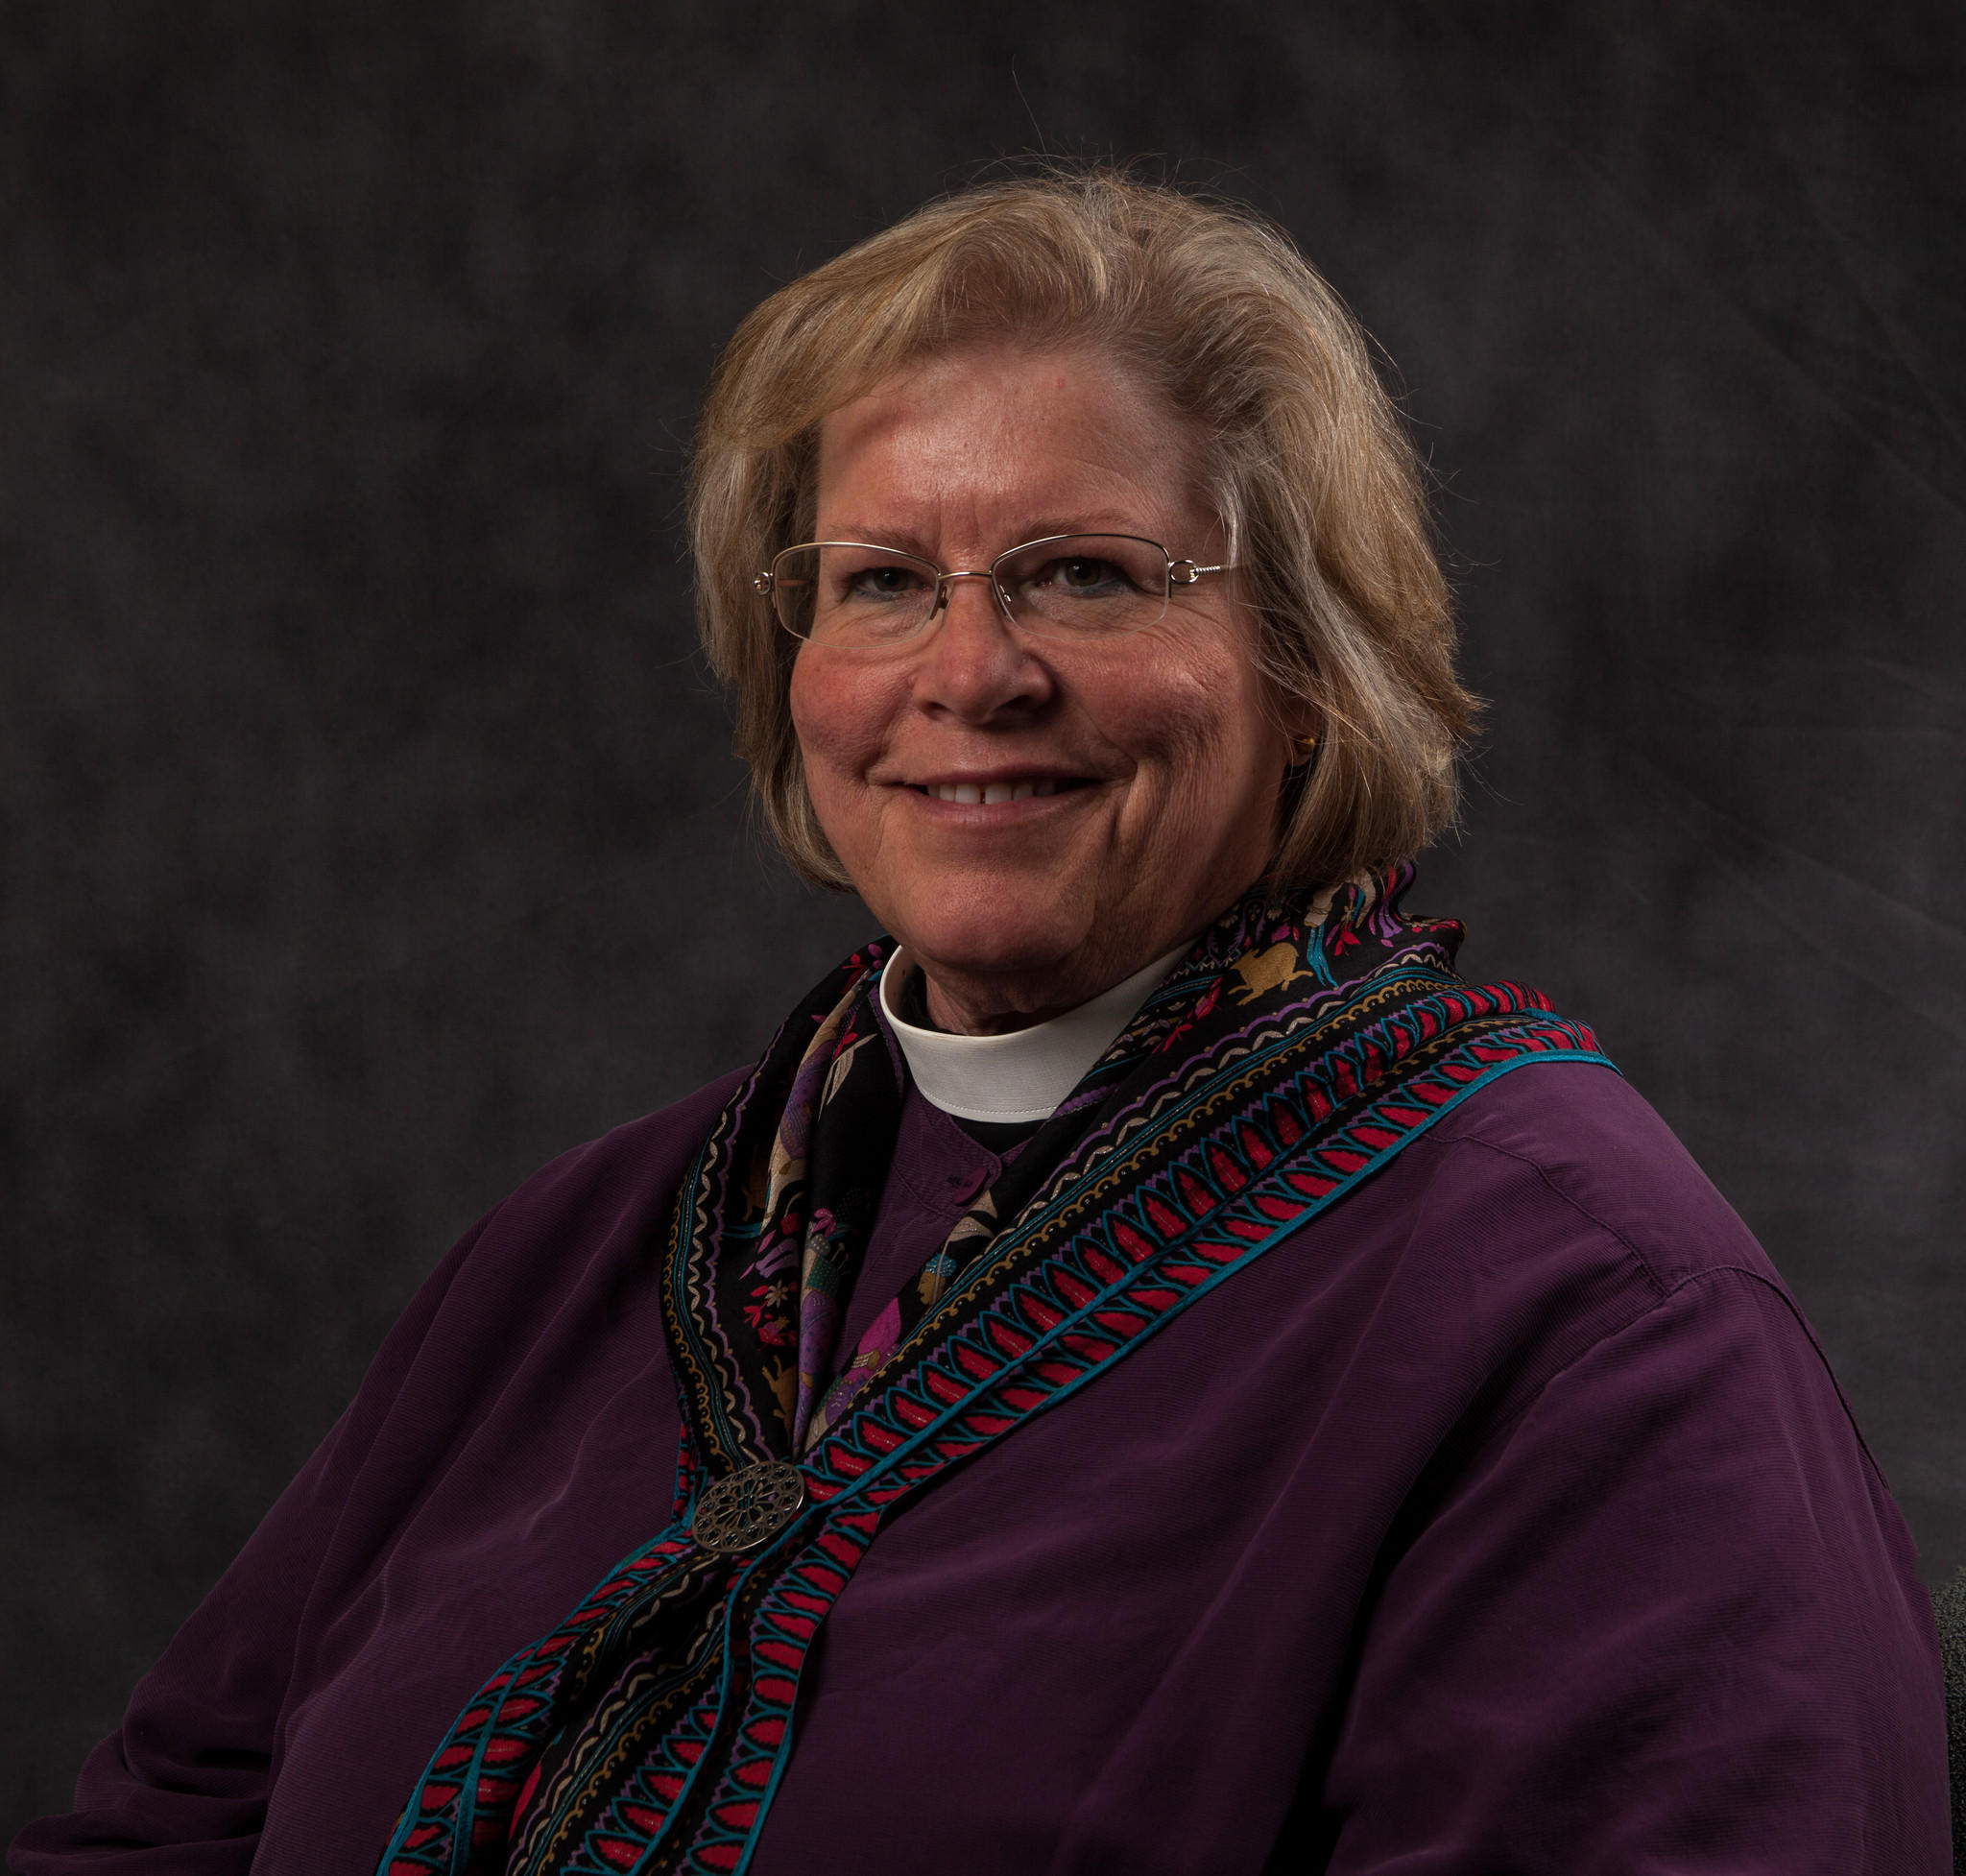 Rev. Canon Heather Cook has been elected Bishop Suffragan of Maryland.